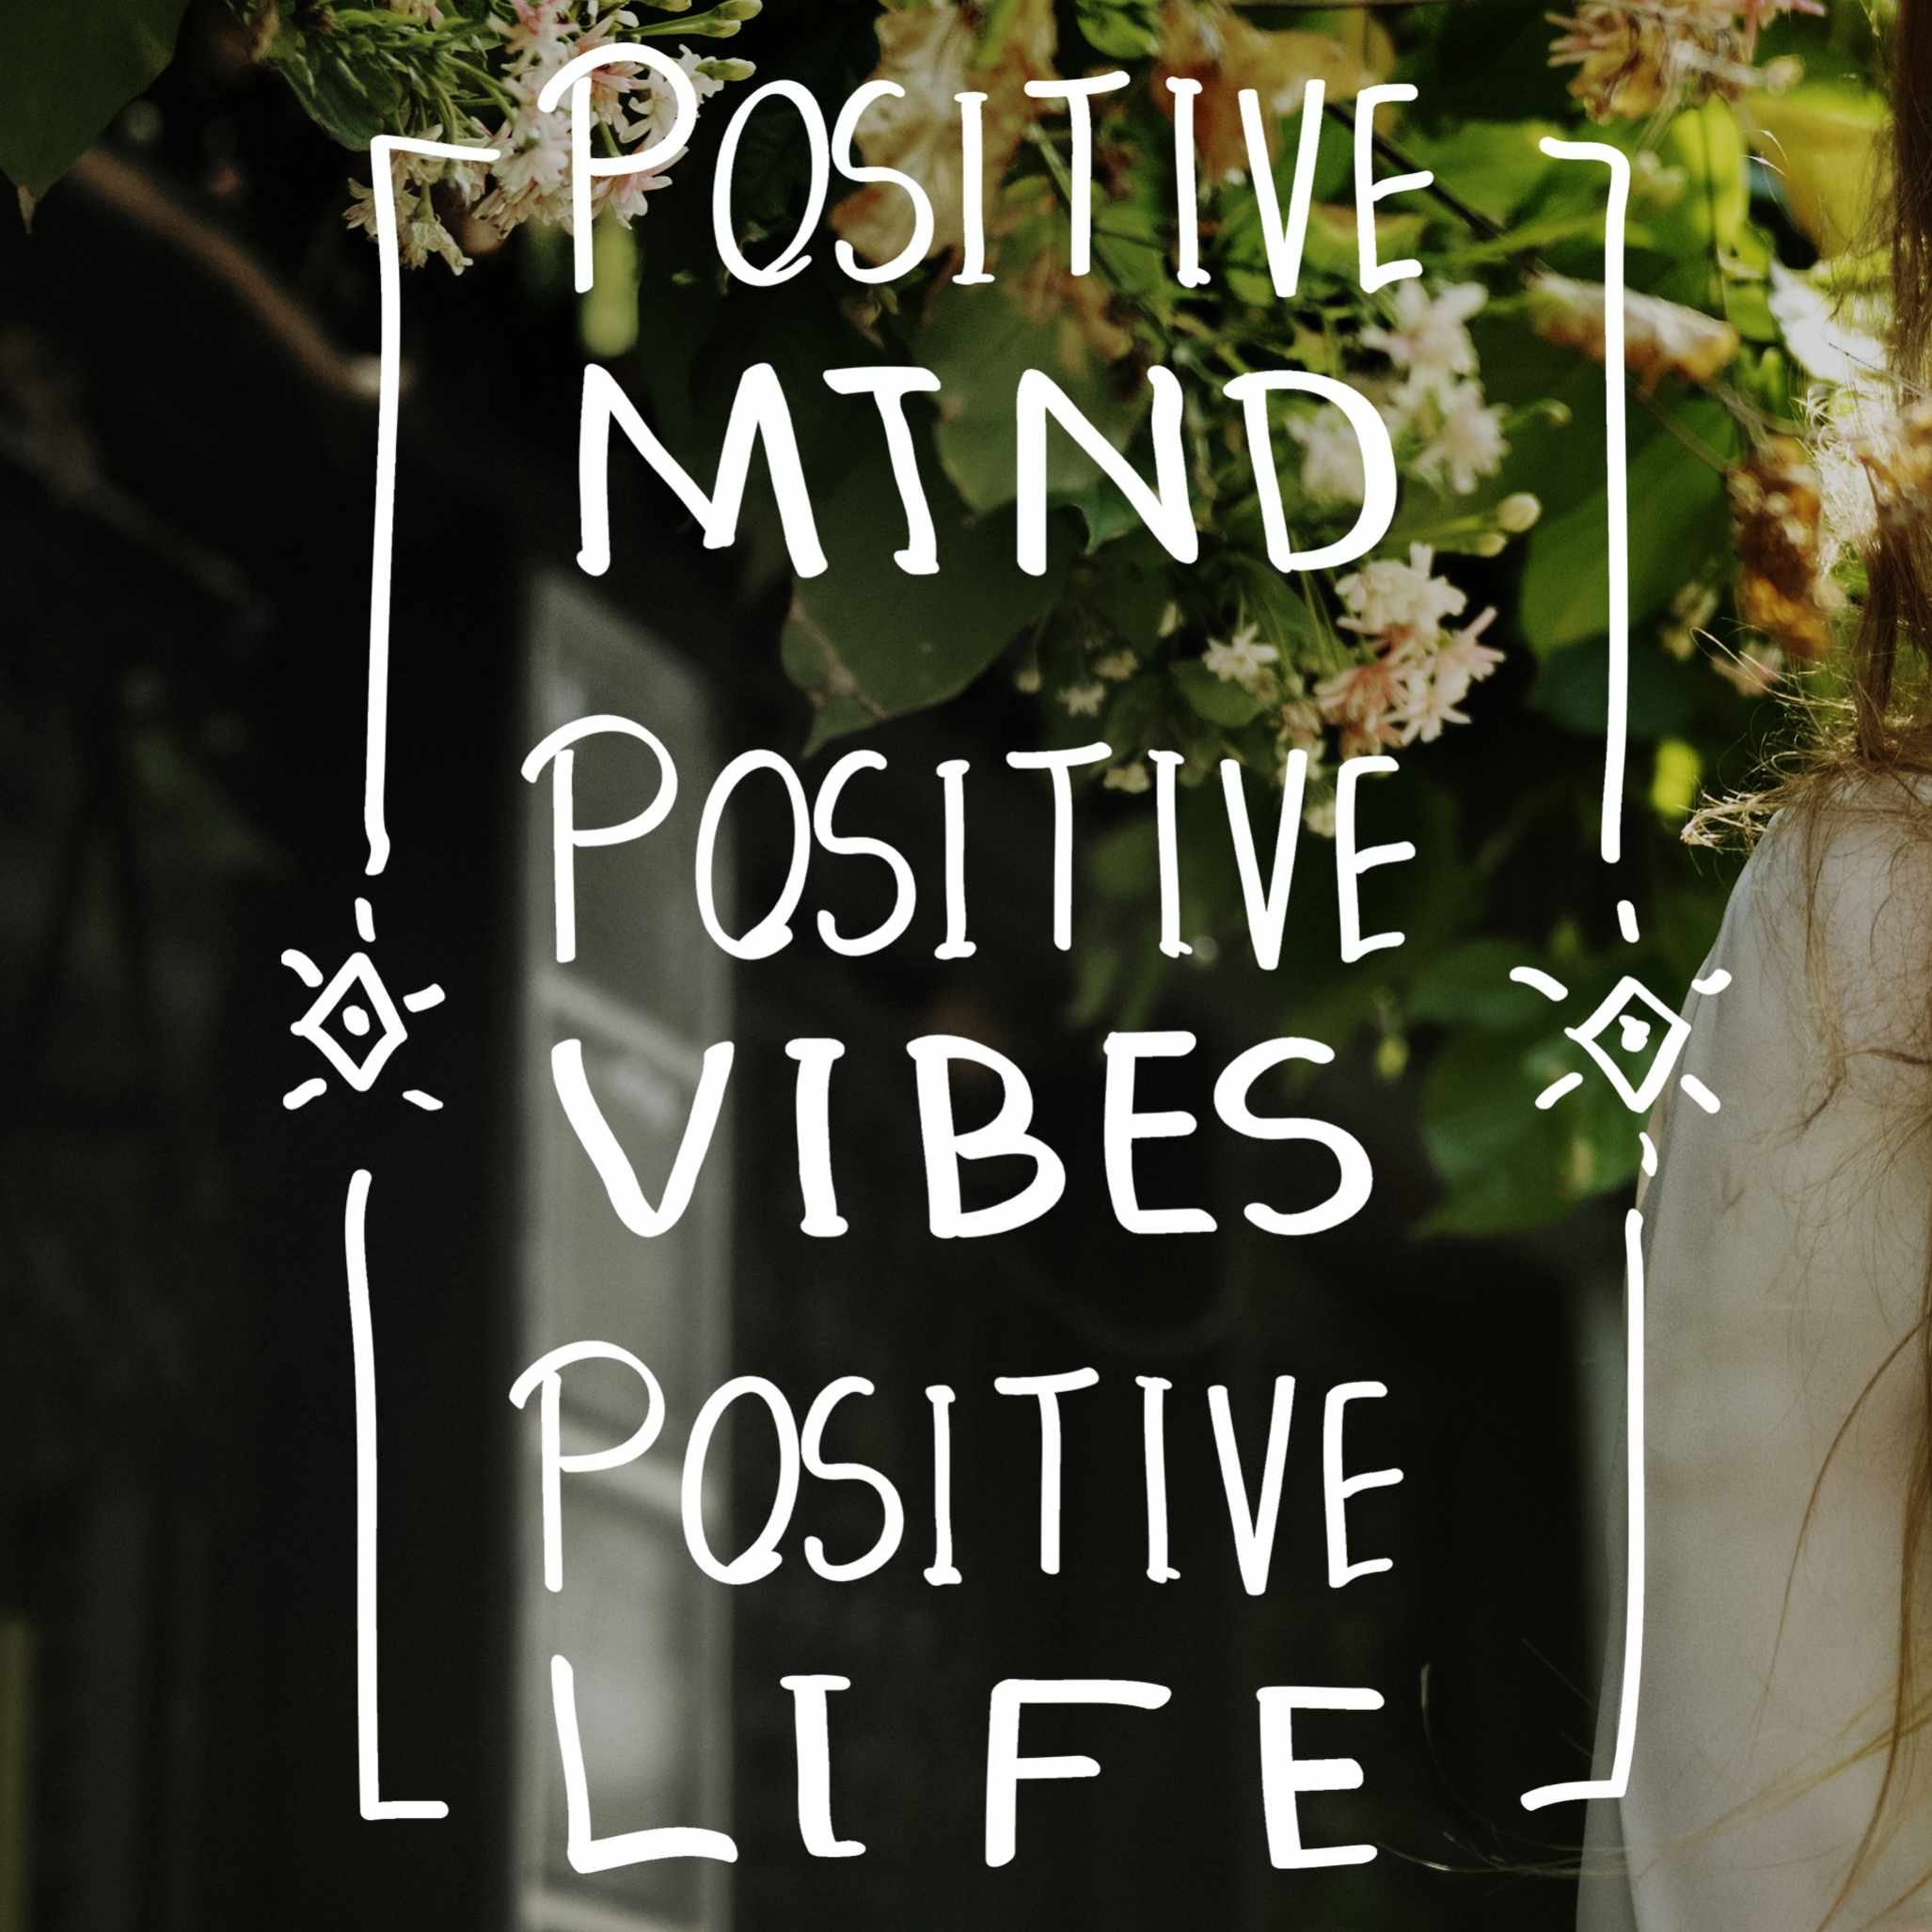 a postive message written out about having positive mindfulness and a life